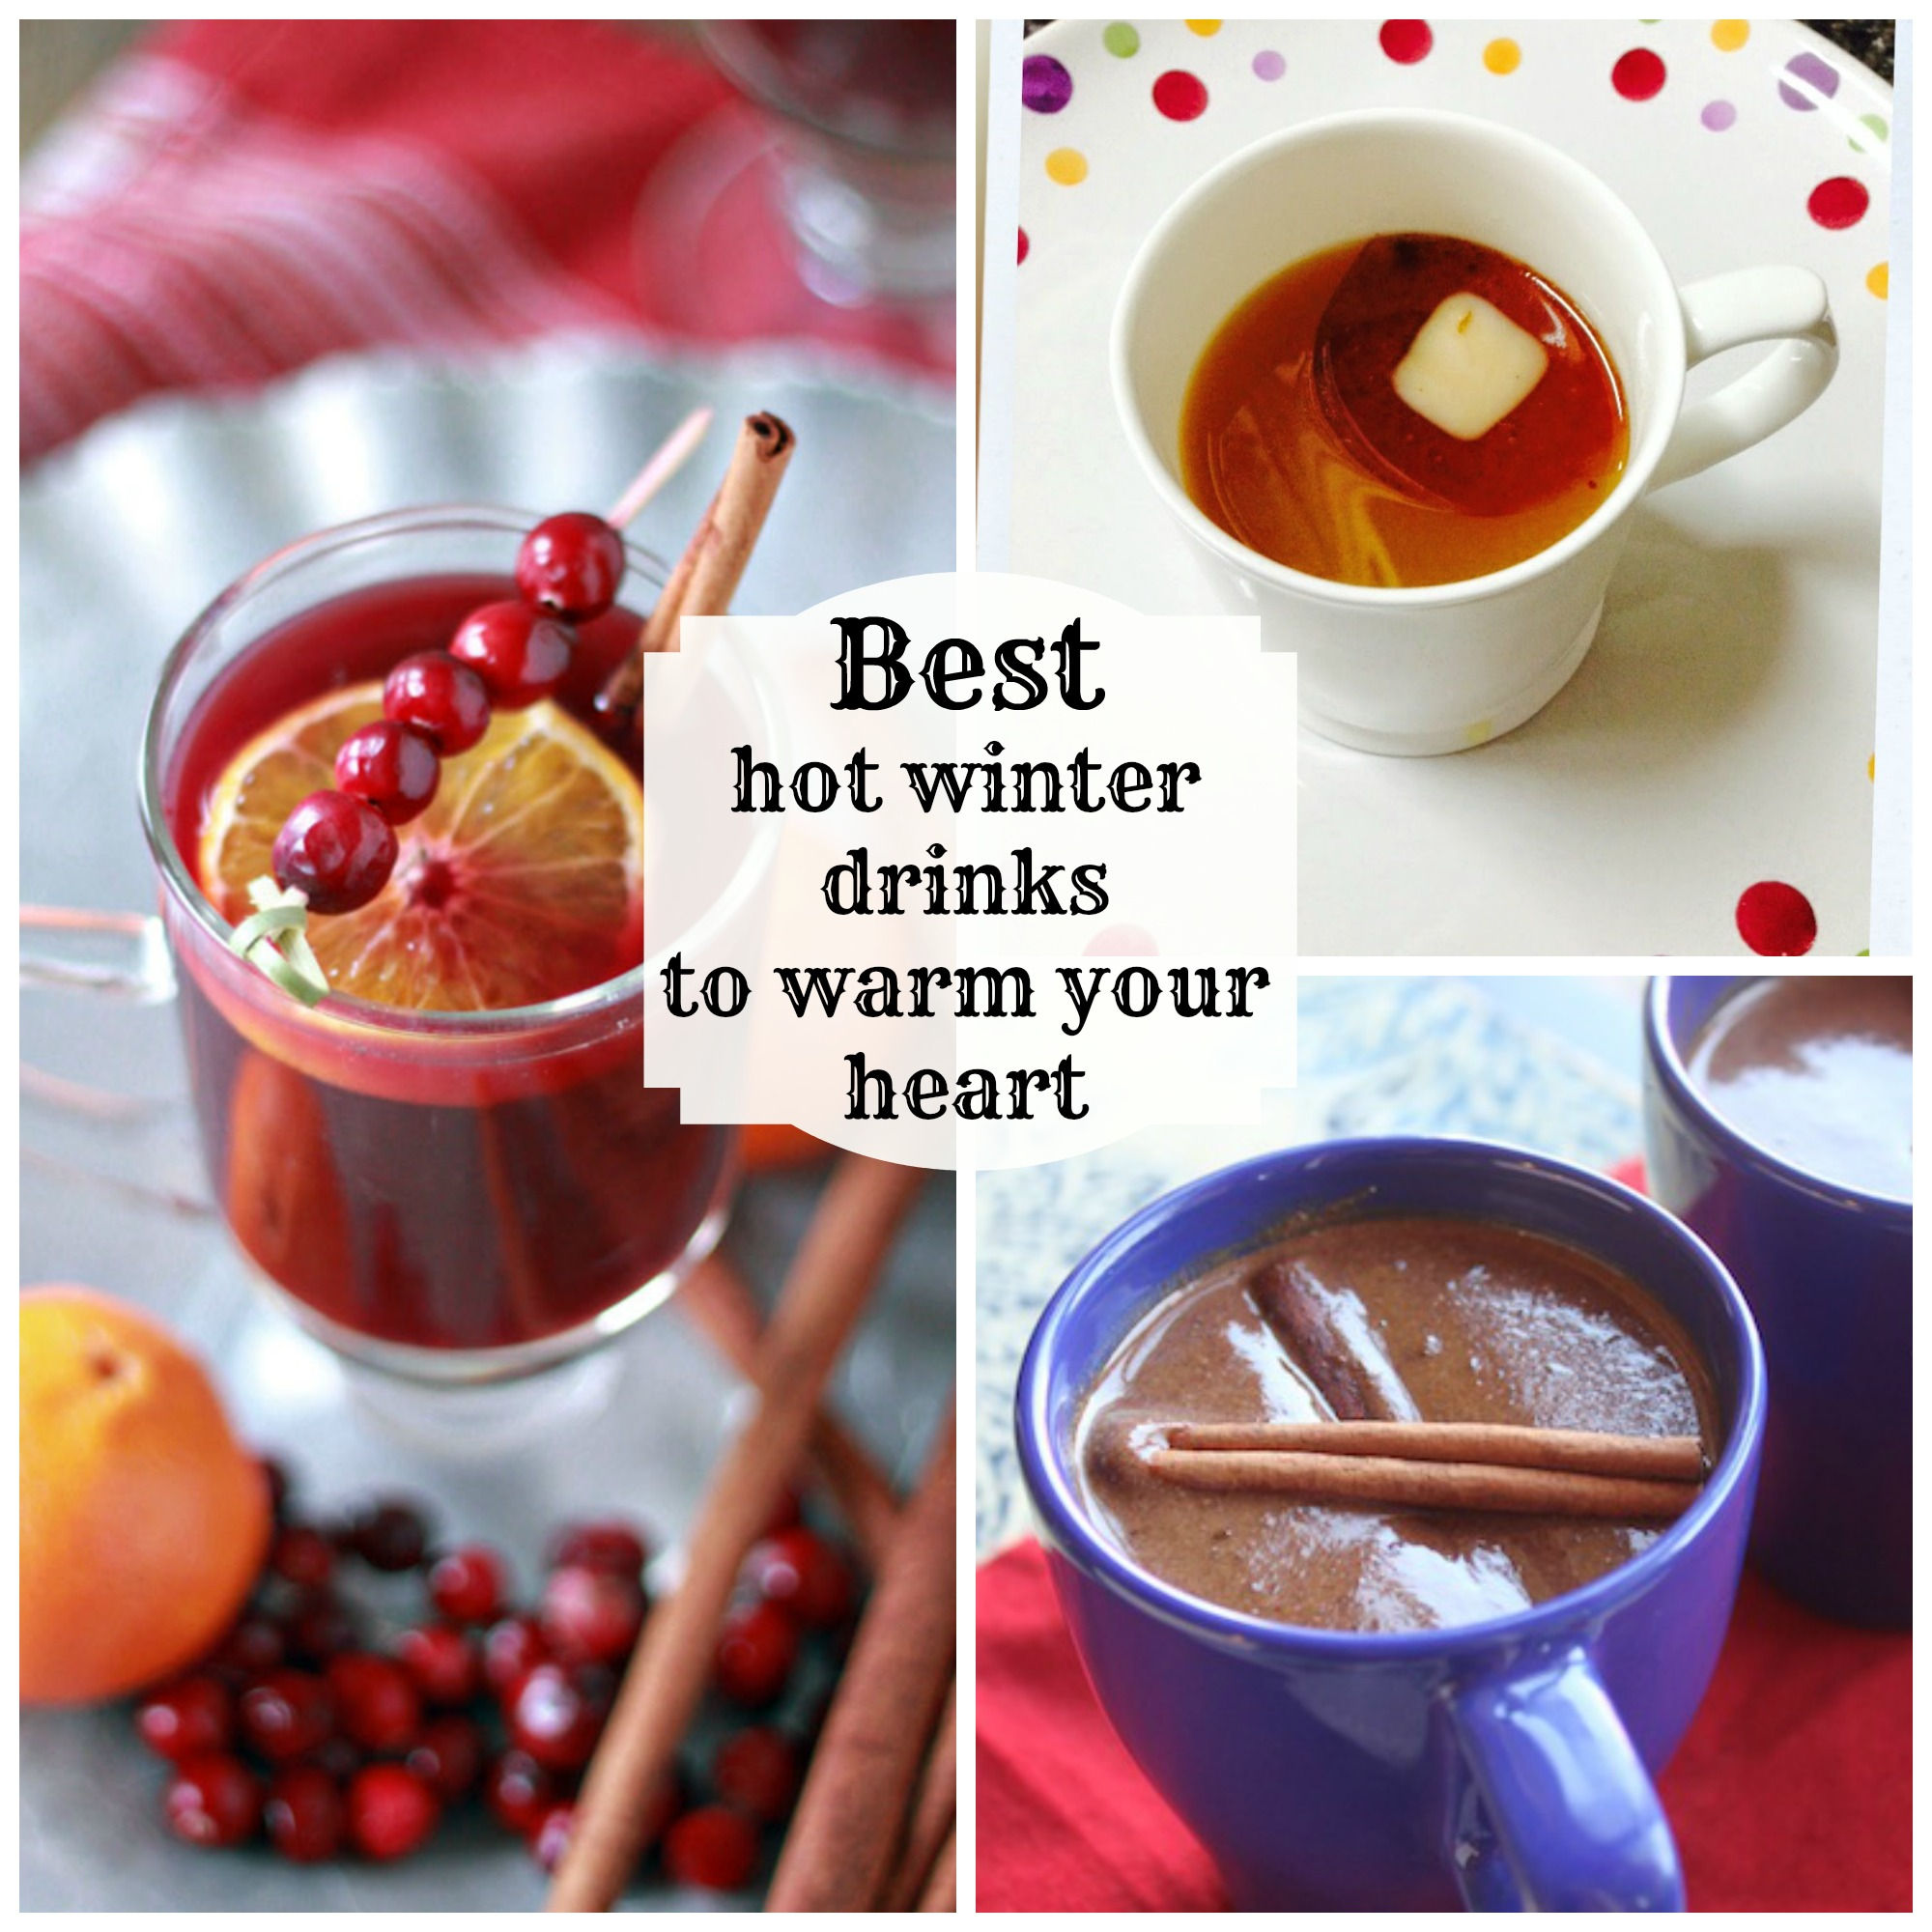 These drinks taste gourmet, AND they are easy to make! #heartwarming #drinkrecipes